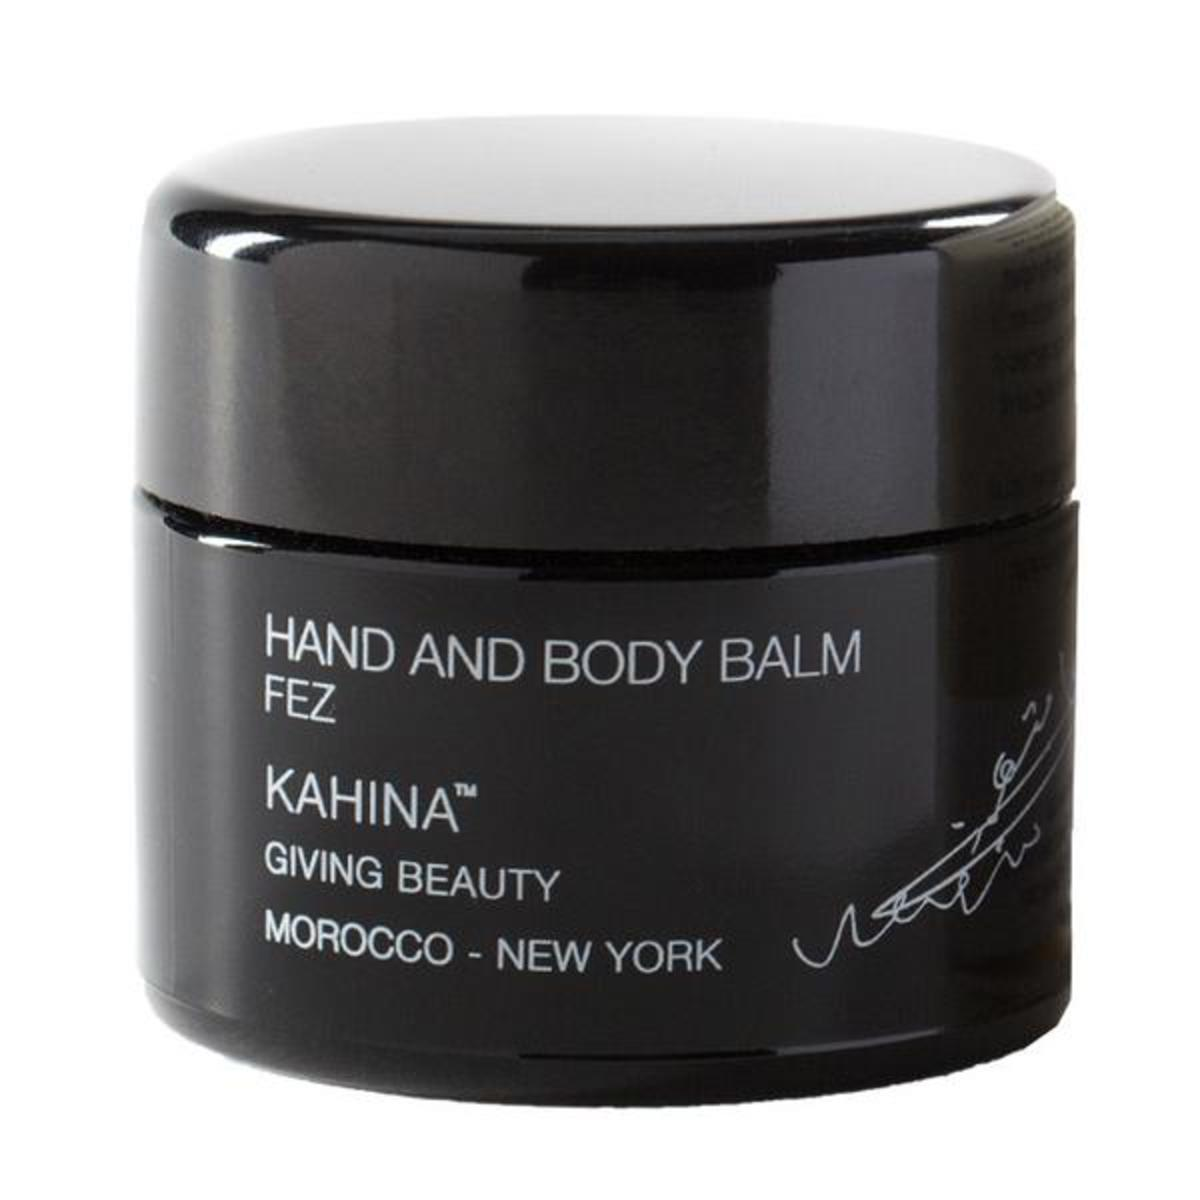 Kahina Giving Beauty Fez Hand & Body Balm